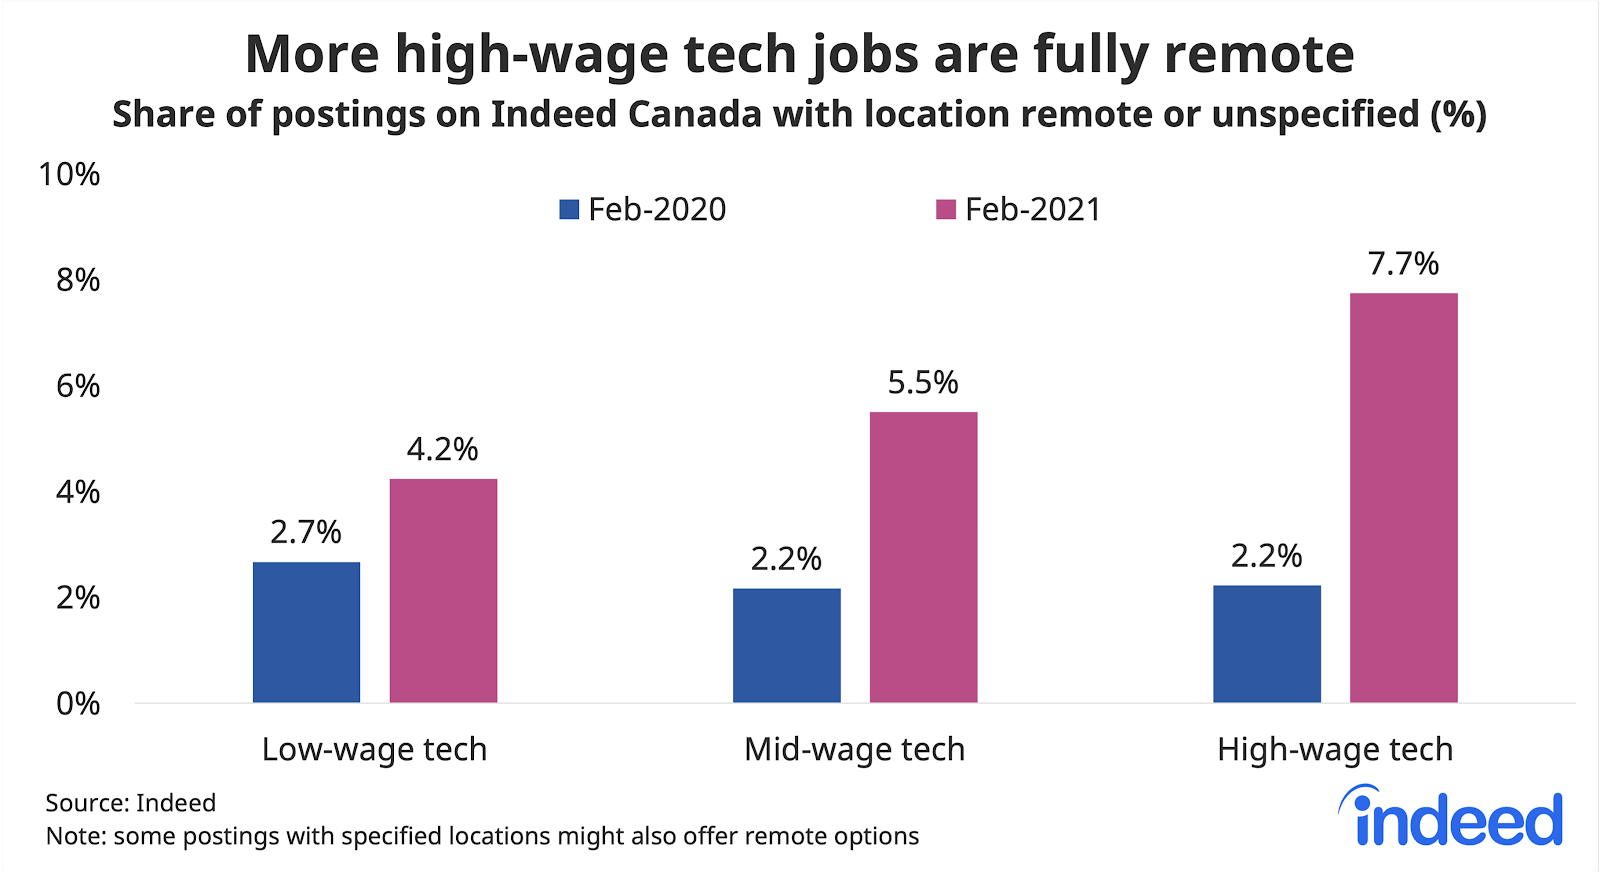 Bar graph showing more high-wage tech jobs are fully remote